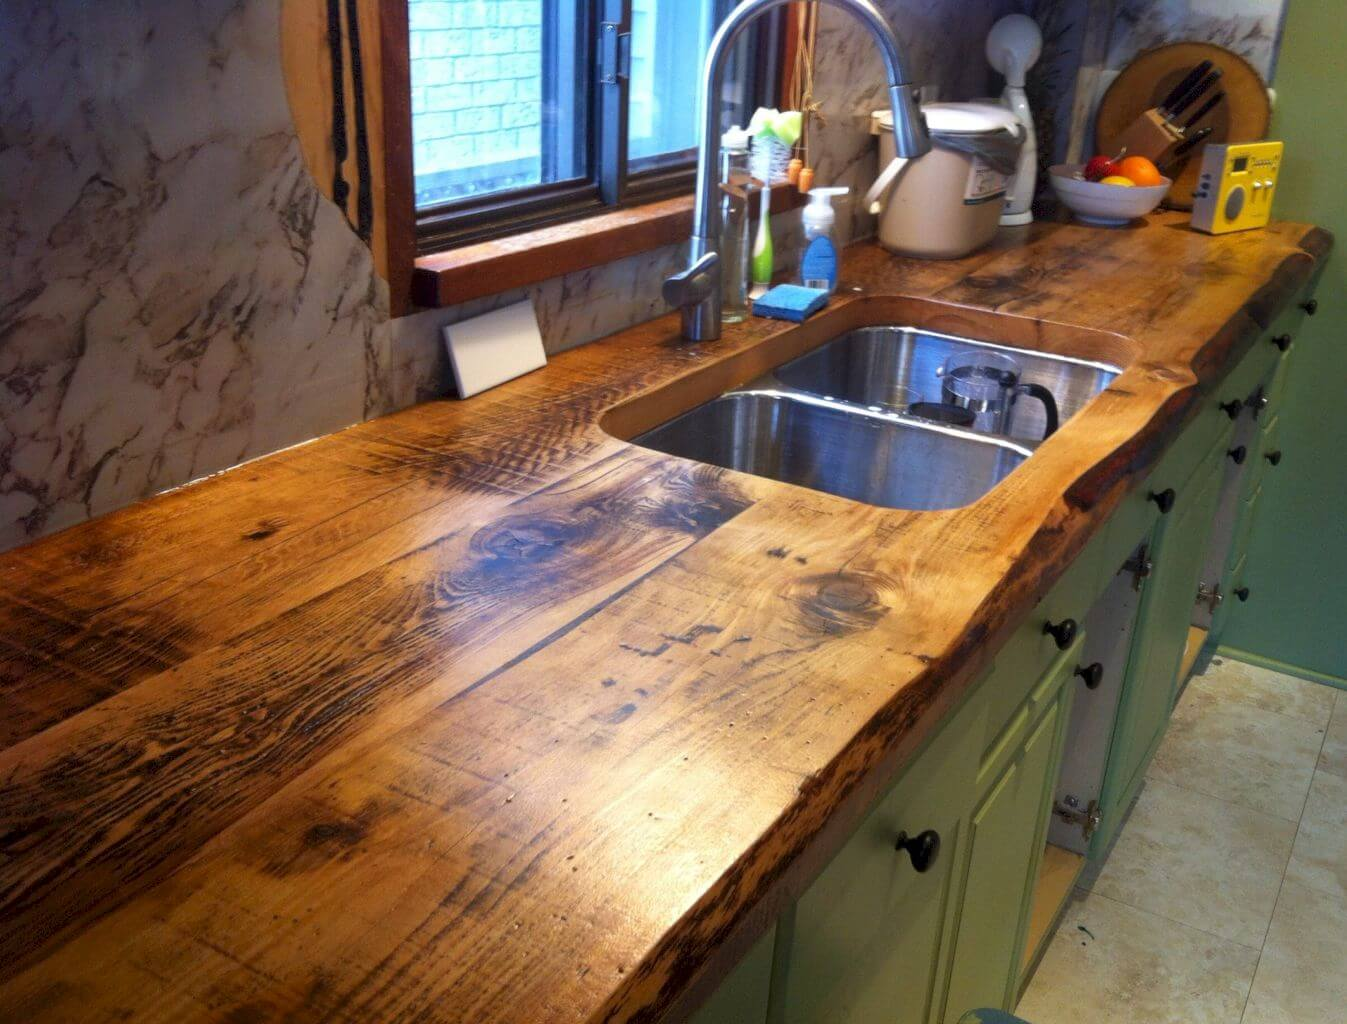 rustic kitchen sinks aid trash compactor 26 farmhouse sink ideas and designs for 2019 double in a wood counter